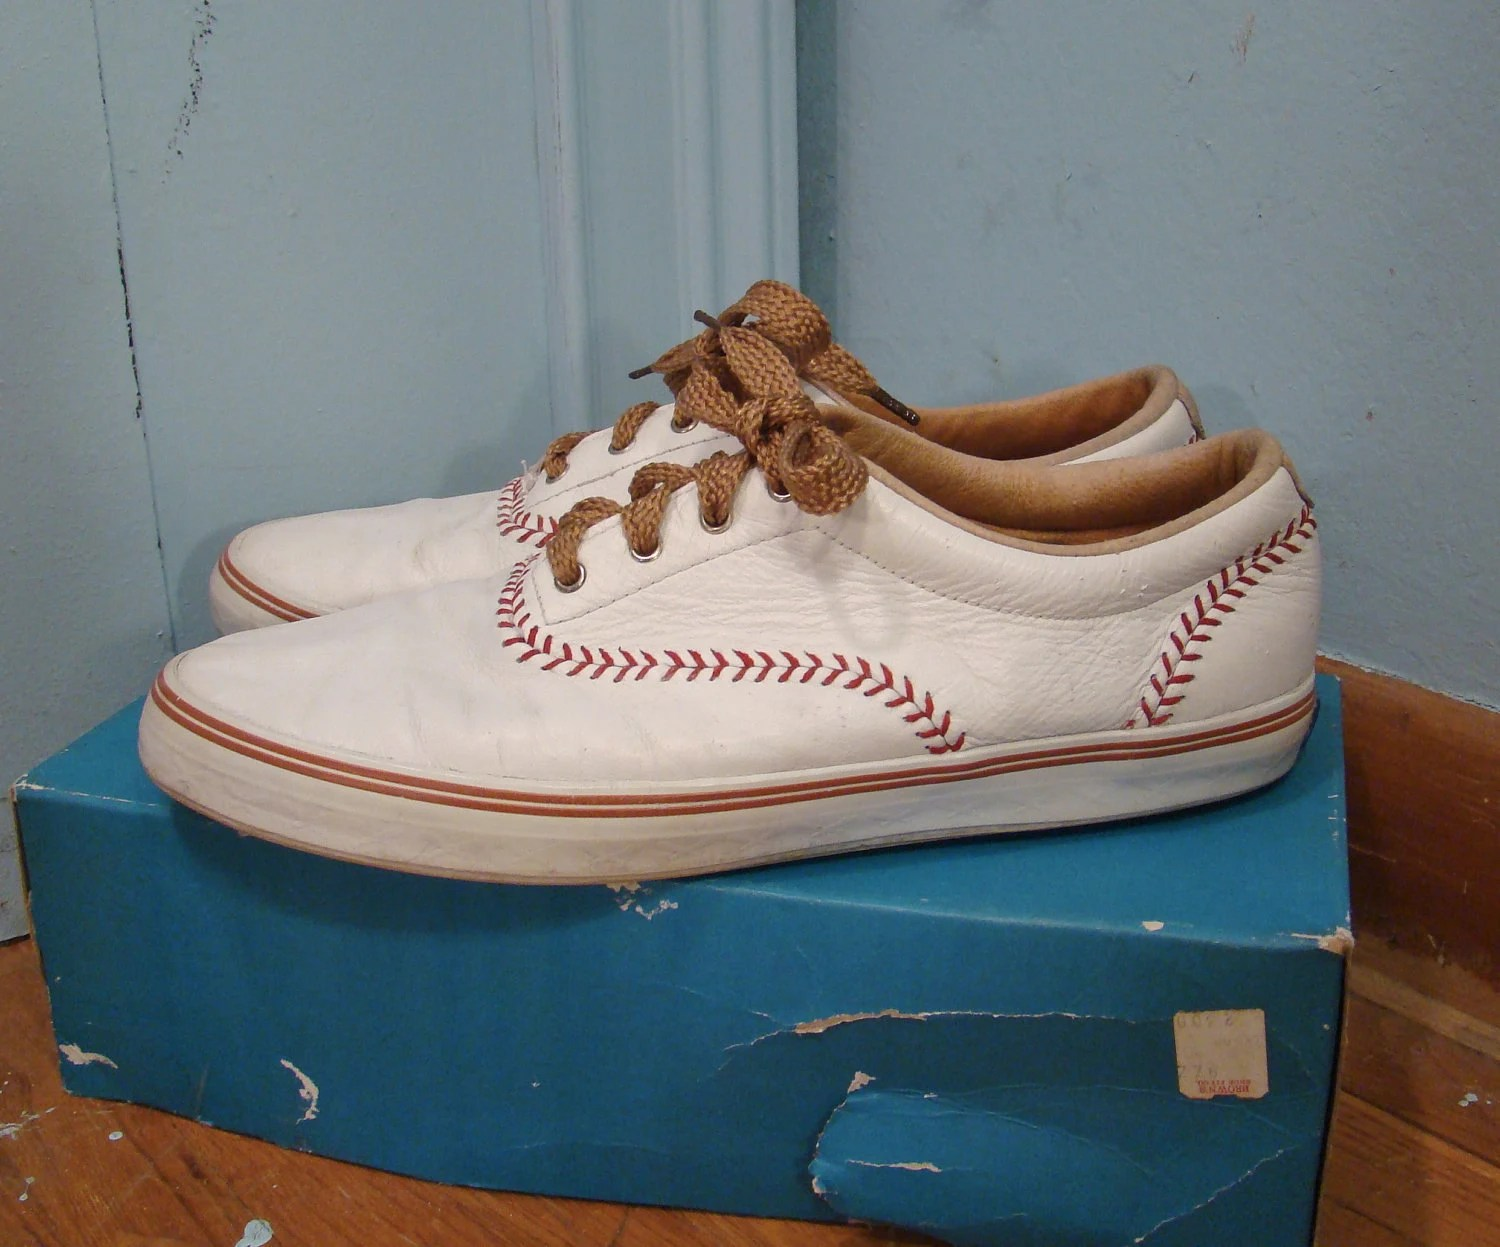 Keds Baseball Shoes